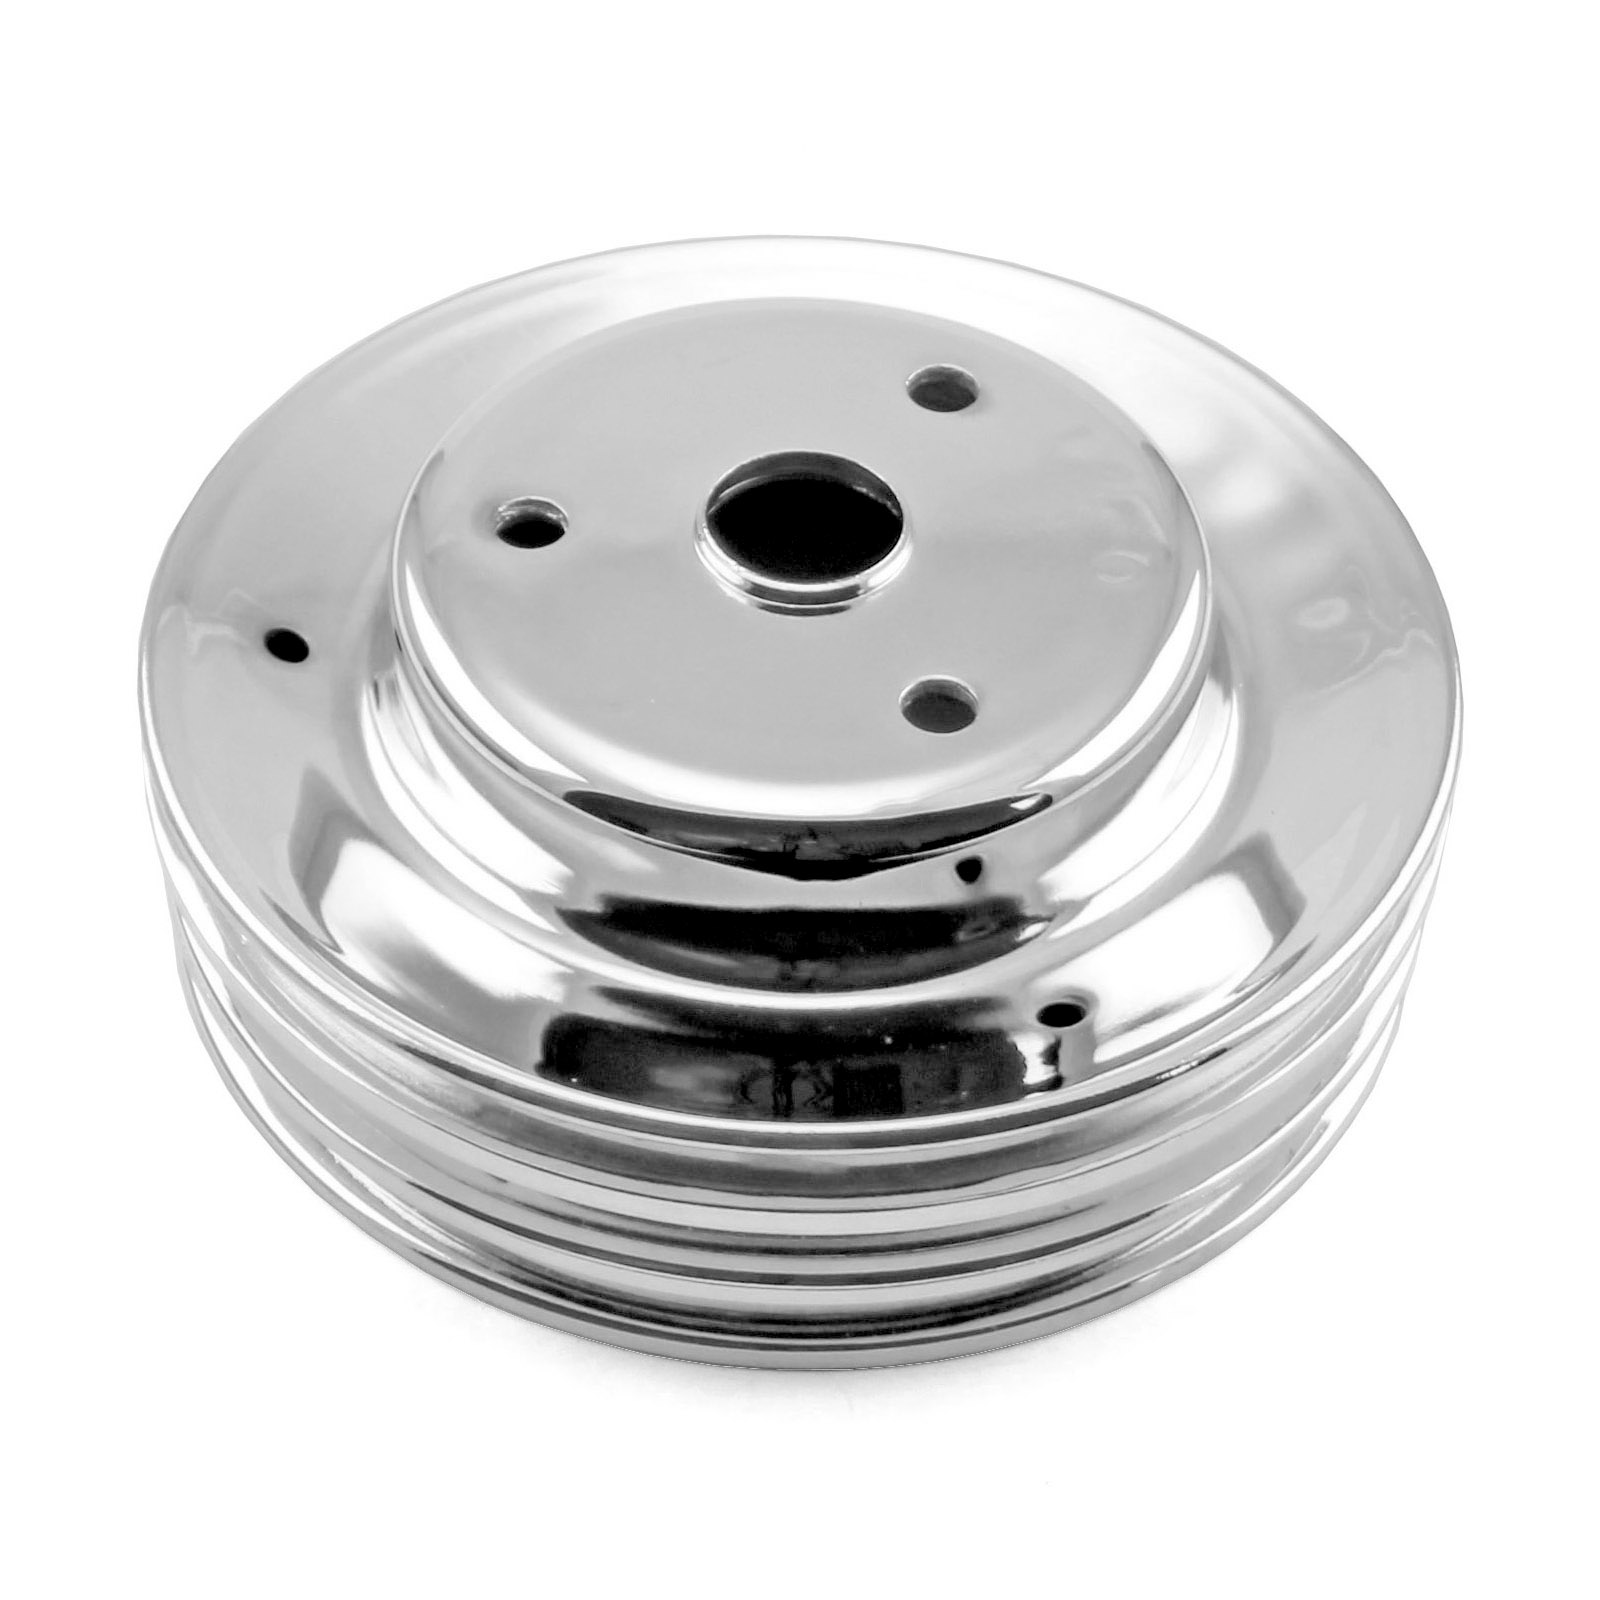 Chevy SBC 350 Steel Long Water Pump Lwp 3 Groove Crank Pulley Chrome